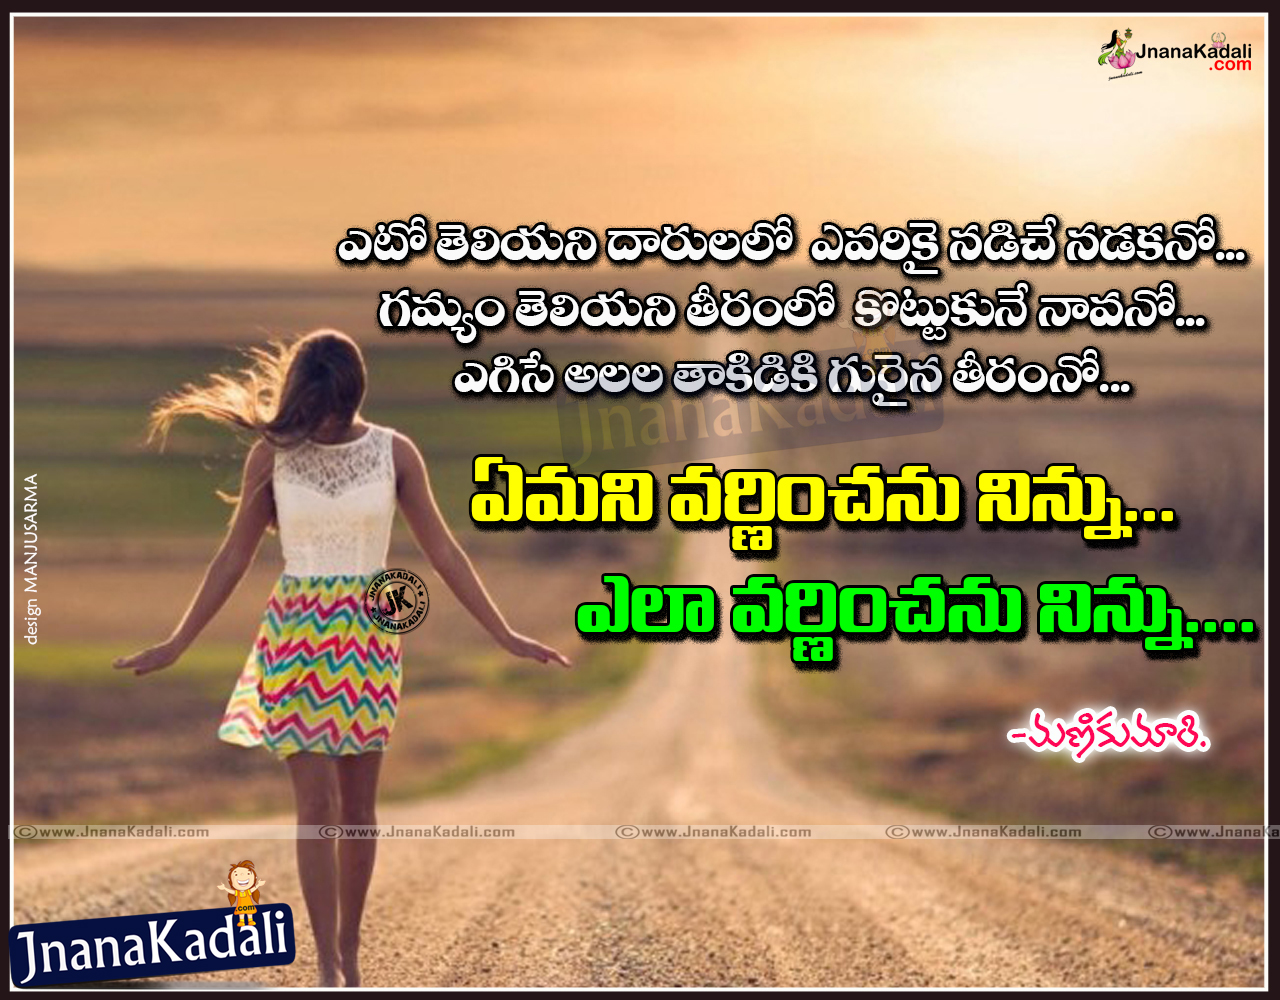 Wallpaper Love Failure Quotes : Love Failure Quotes Hd Images In Telugu Wallpaper Images